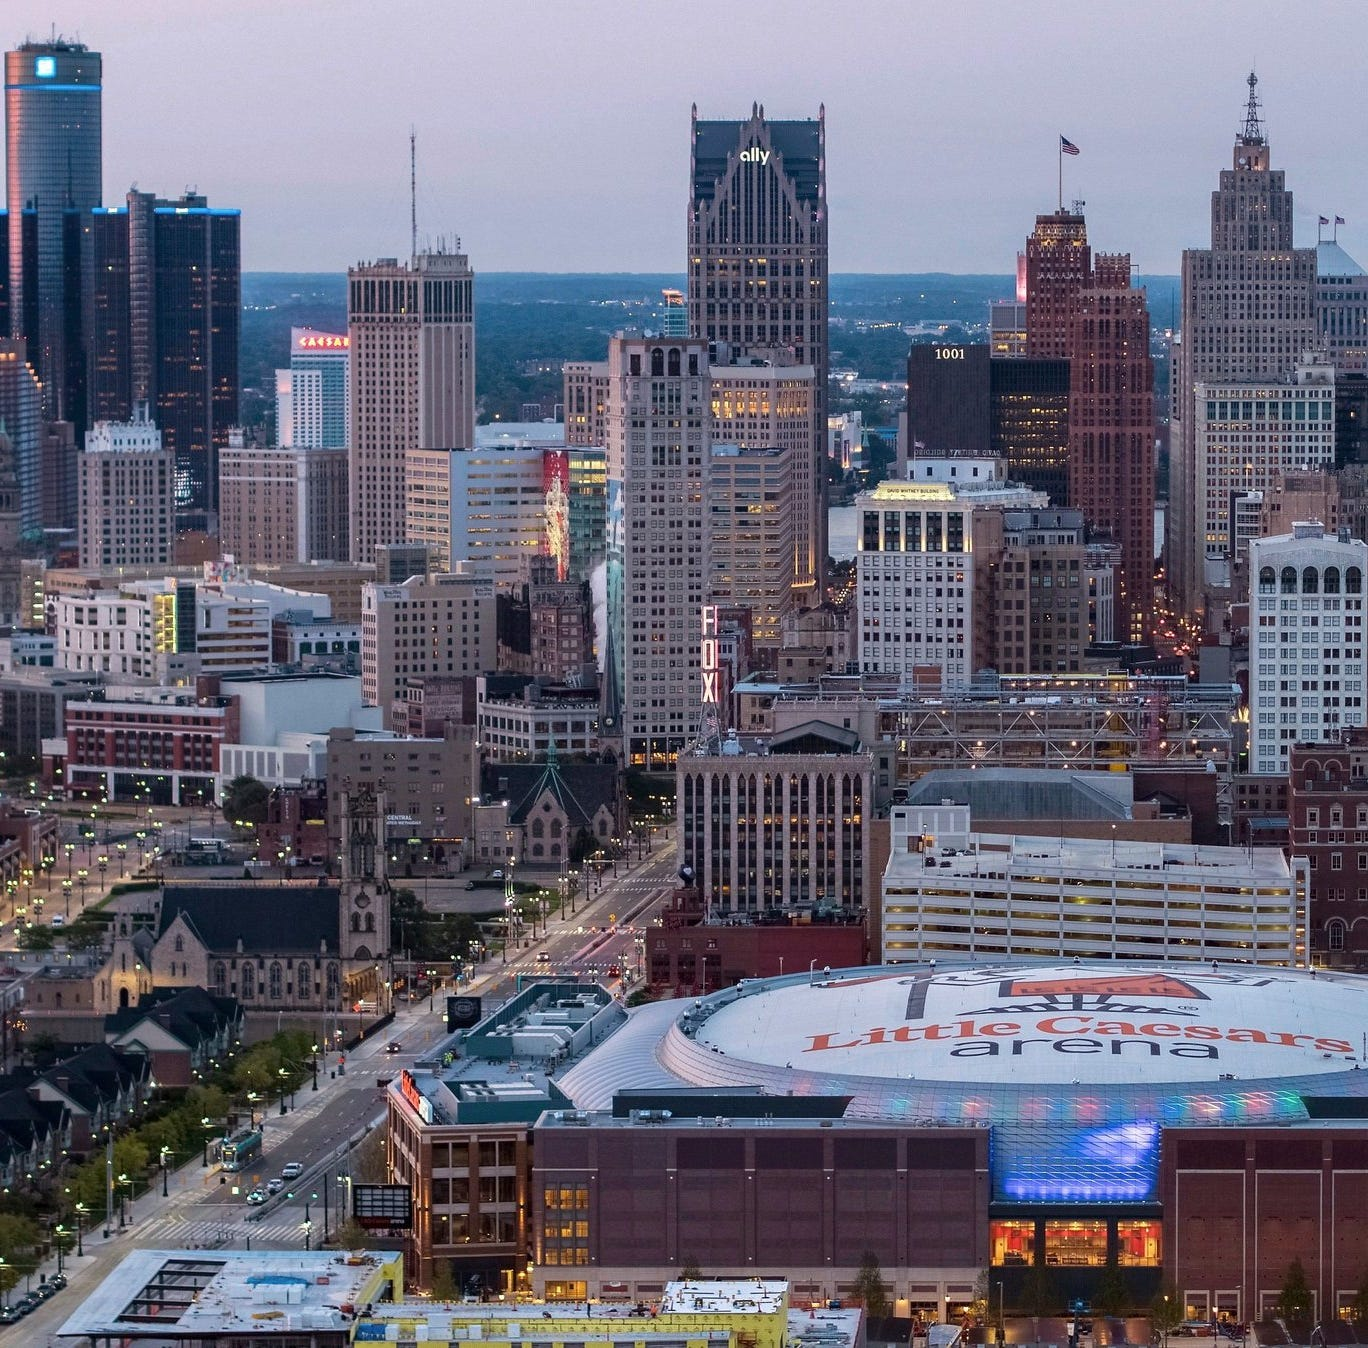 Ilitch family blasts HBO's harsh report on District Detroit